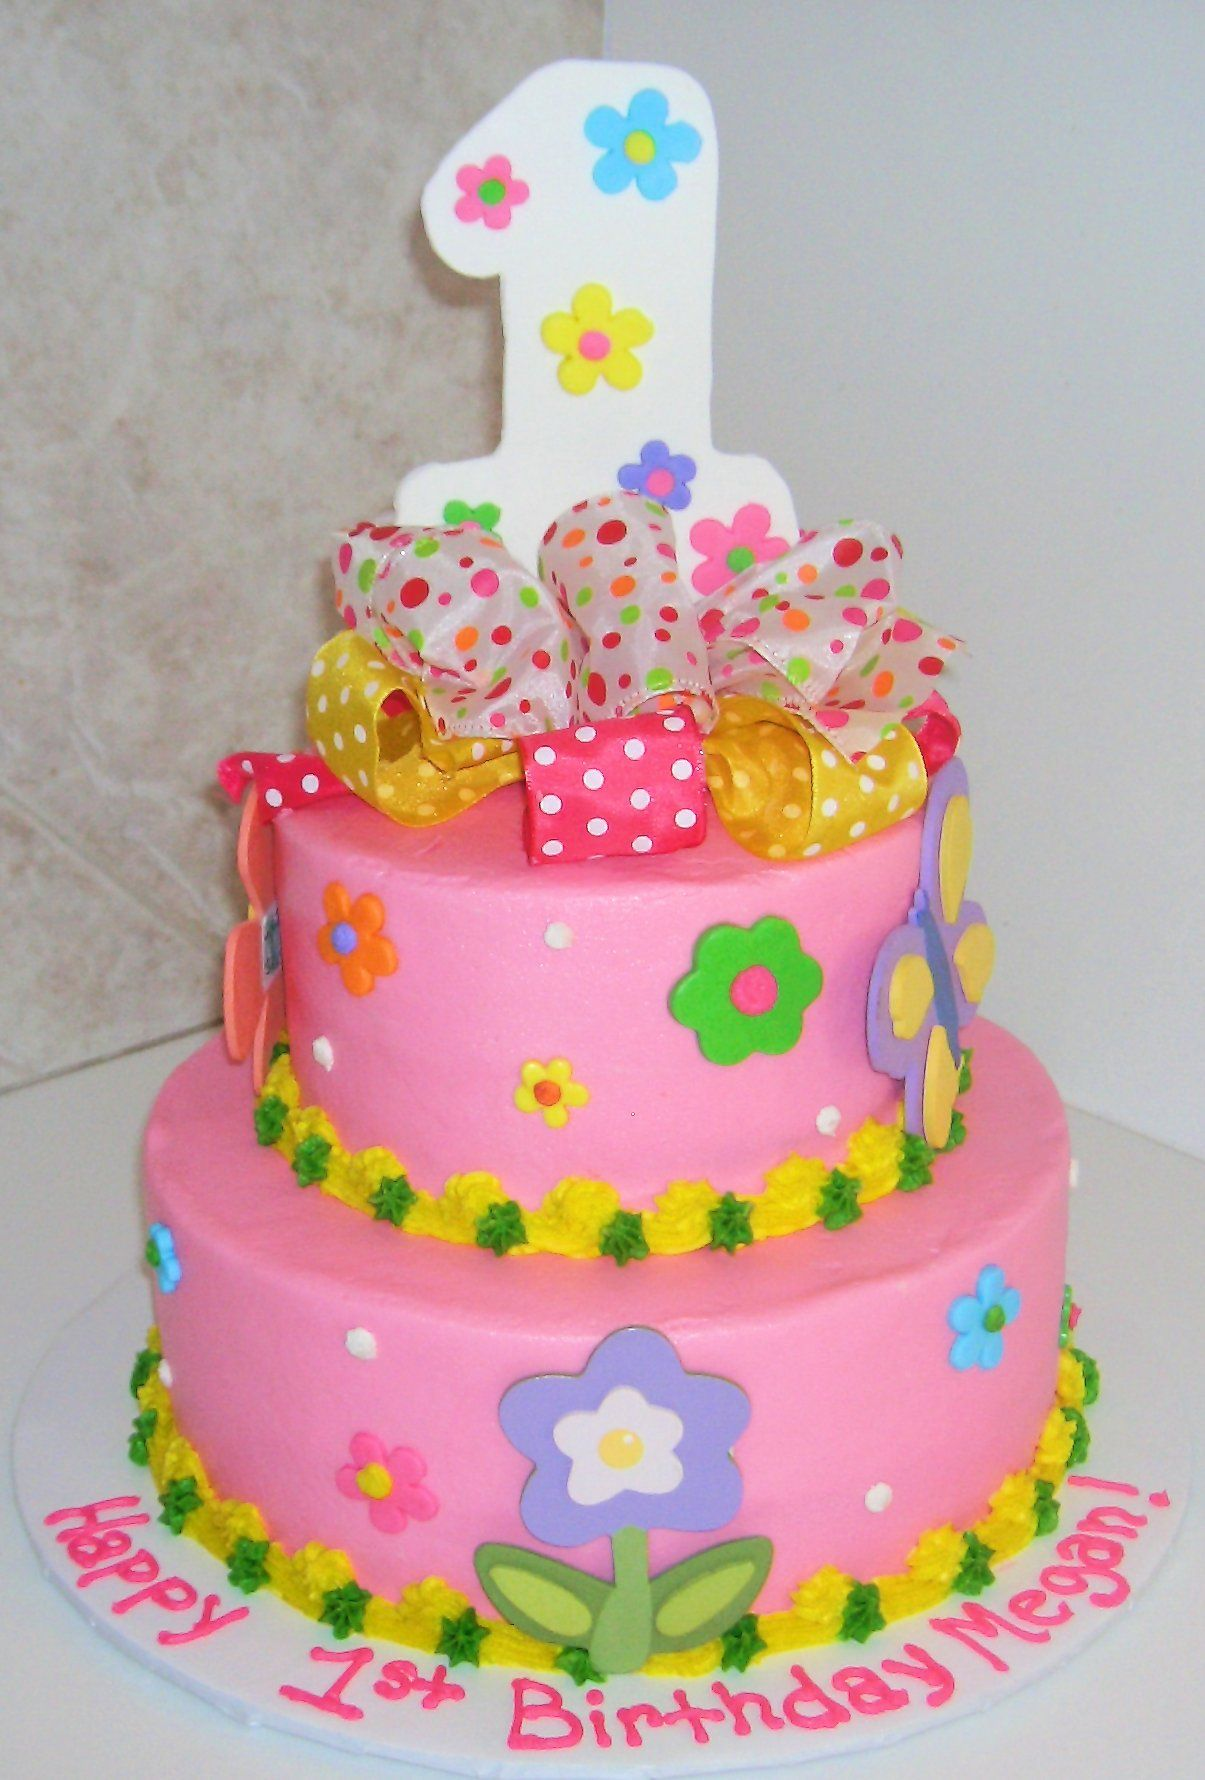 1st birthday flowers description 9 6 inch stacked rounds